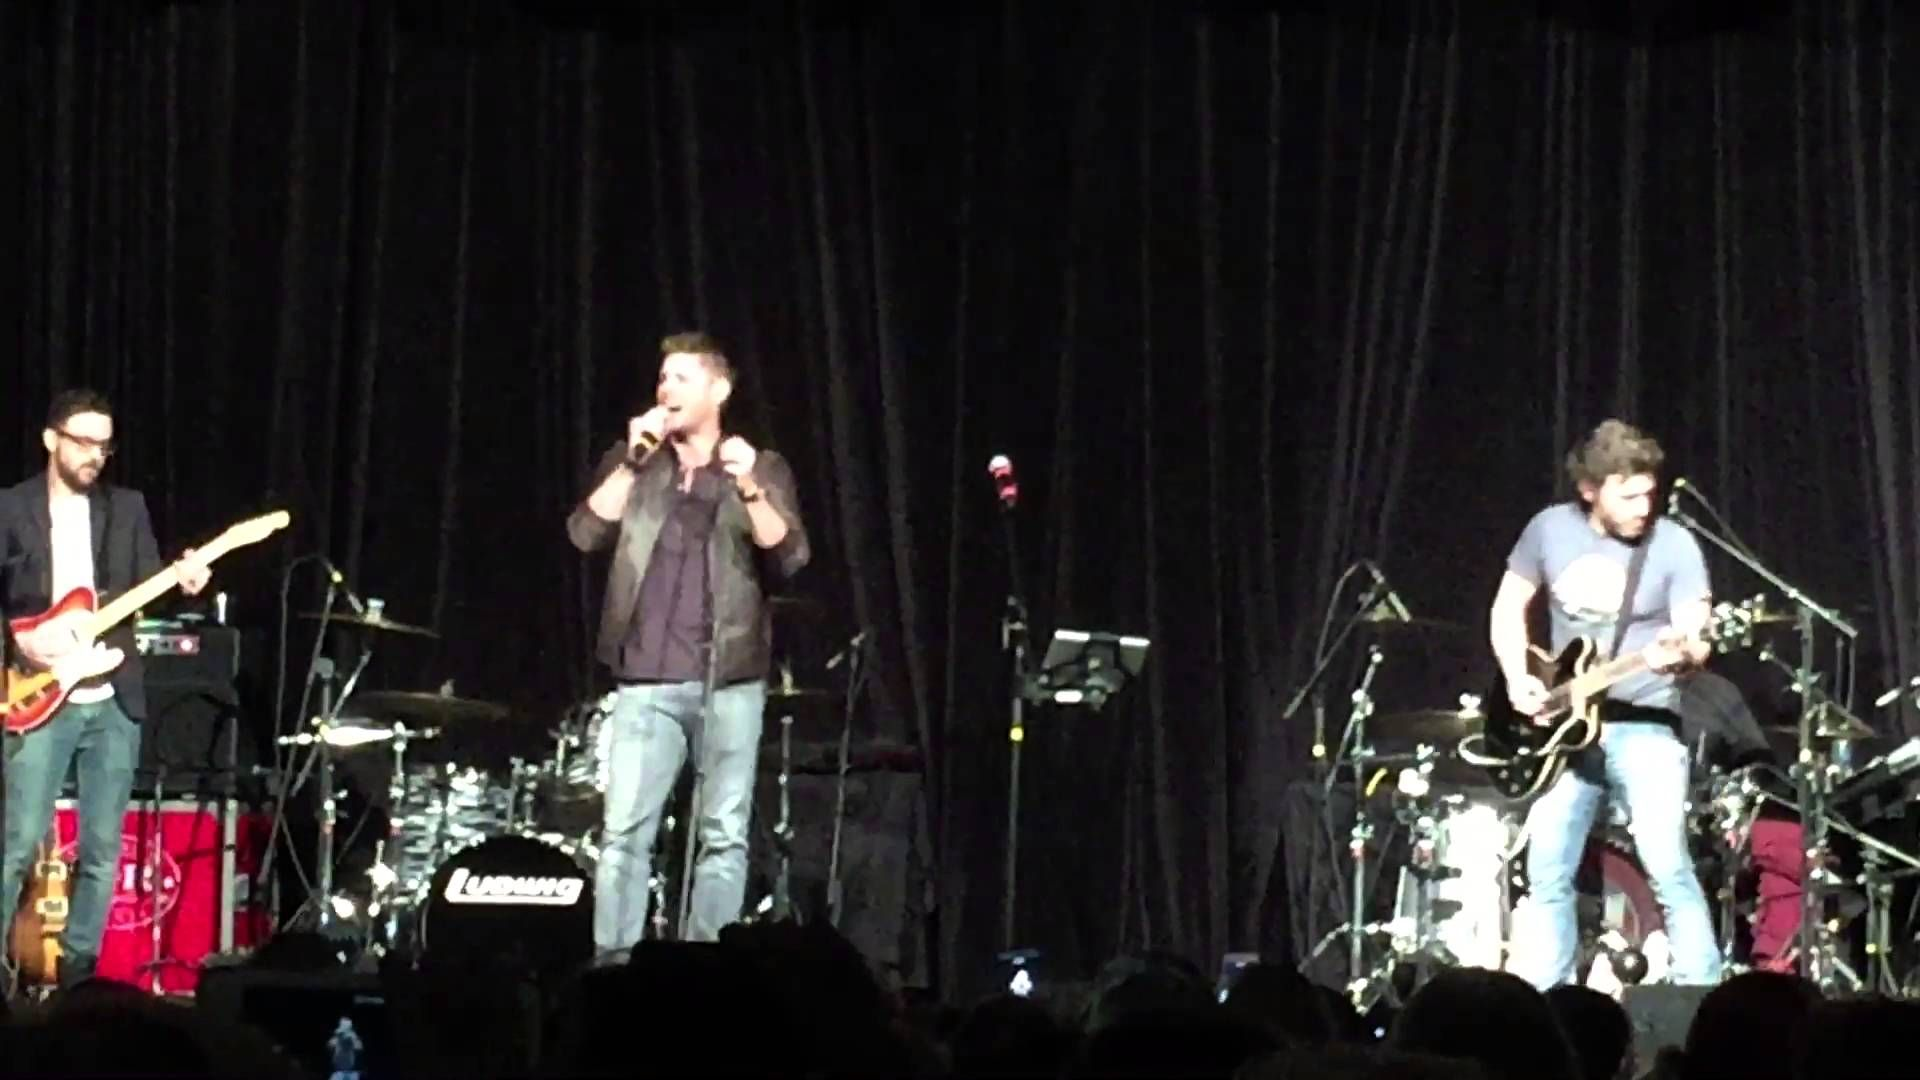 Jensen Ackles singing Whipping Post at Nashcon 2016